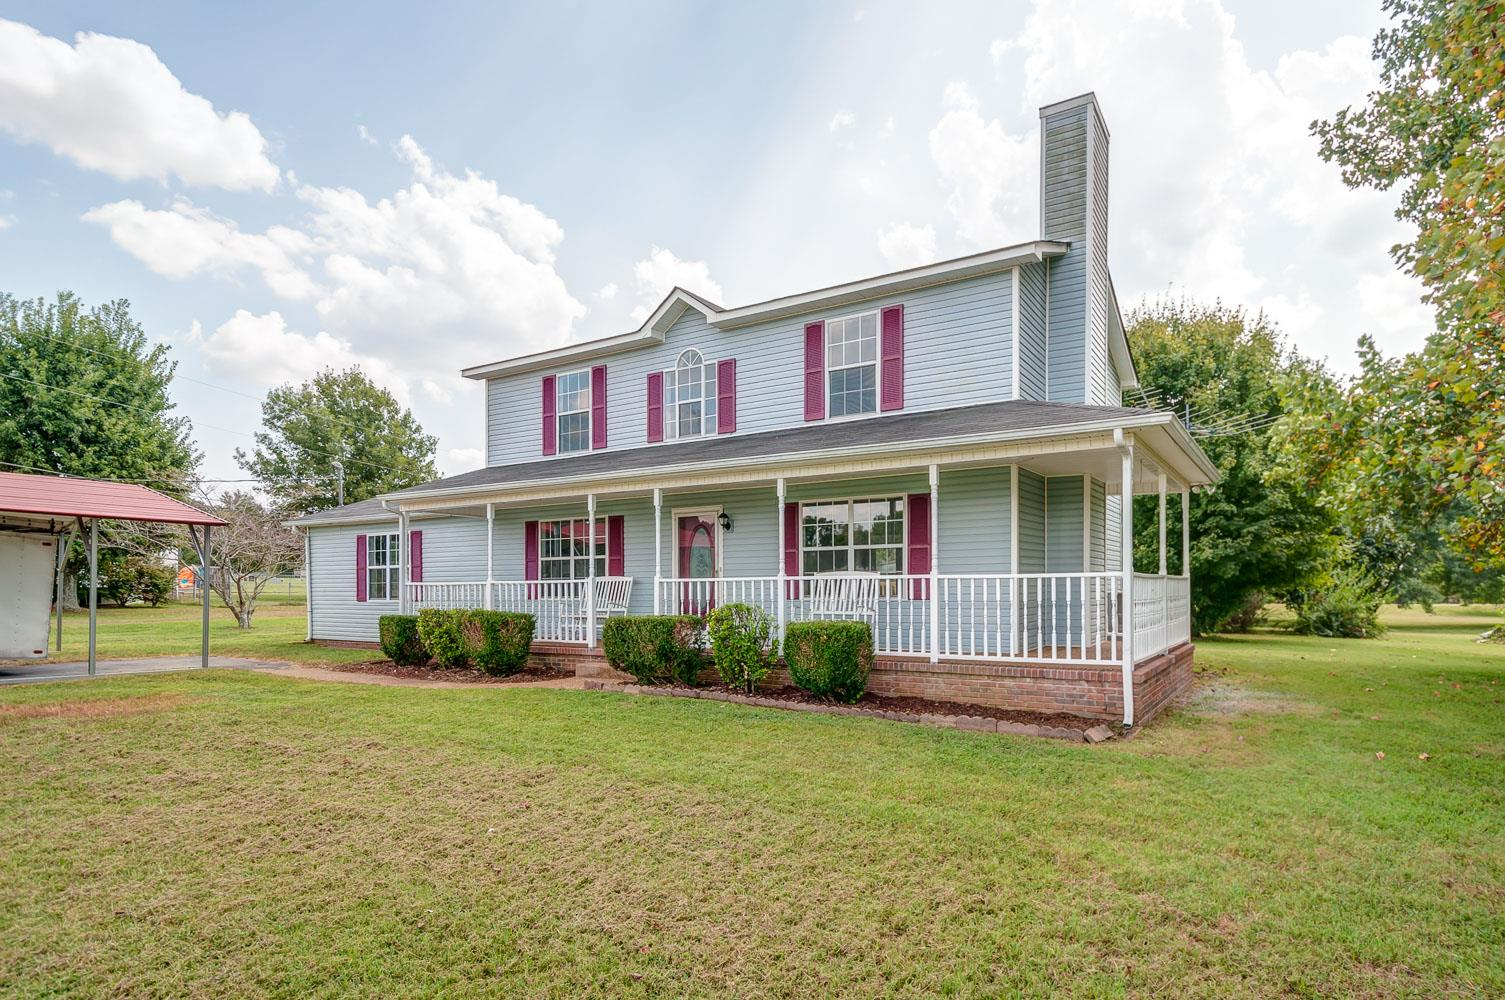 2439 Old Farmington Rd, Lewisburg, TN 37091 - Lewisburg, TN real estate listing